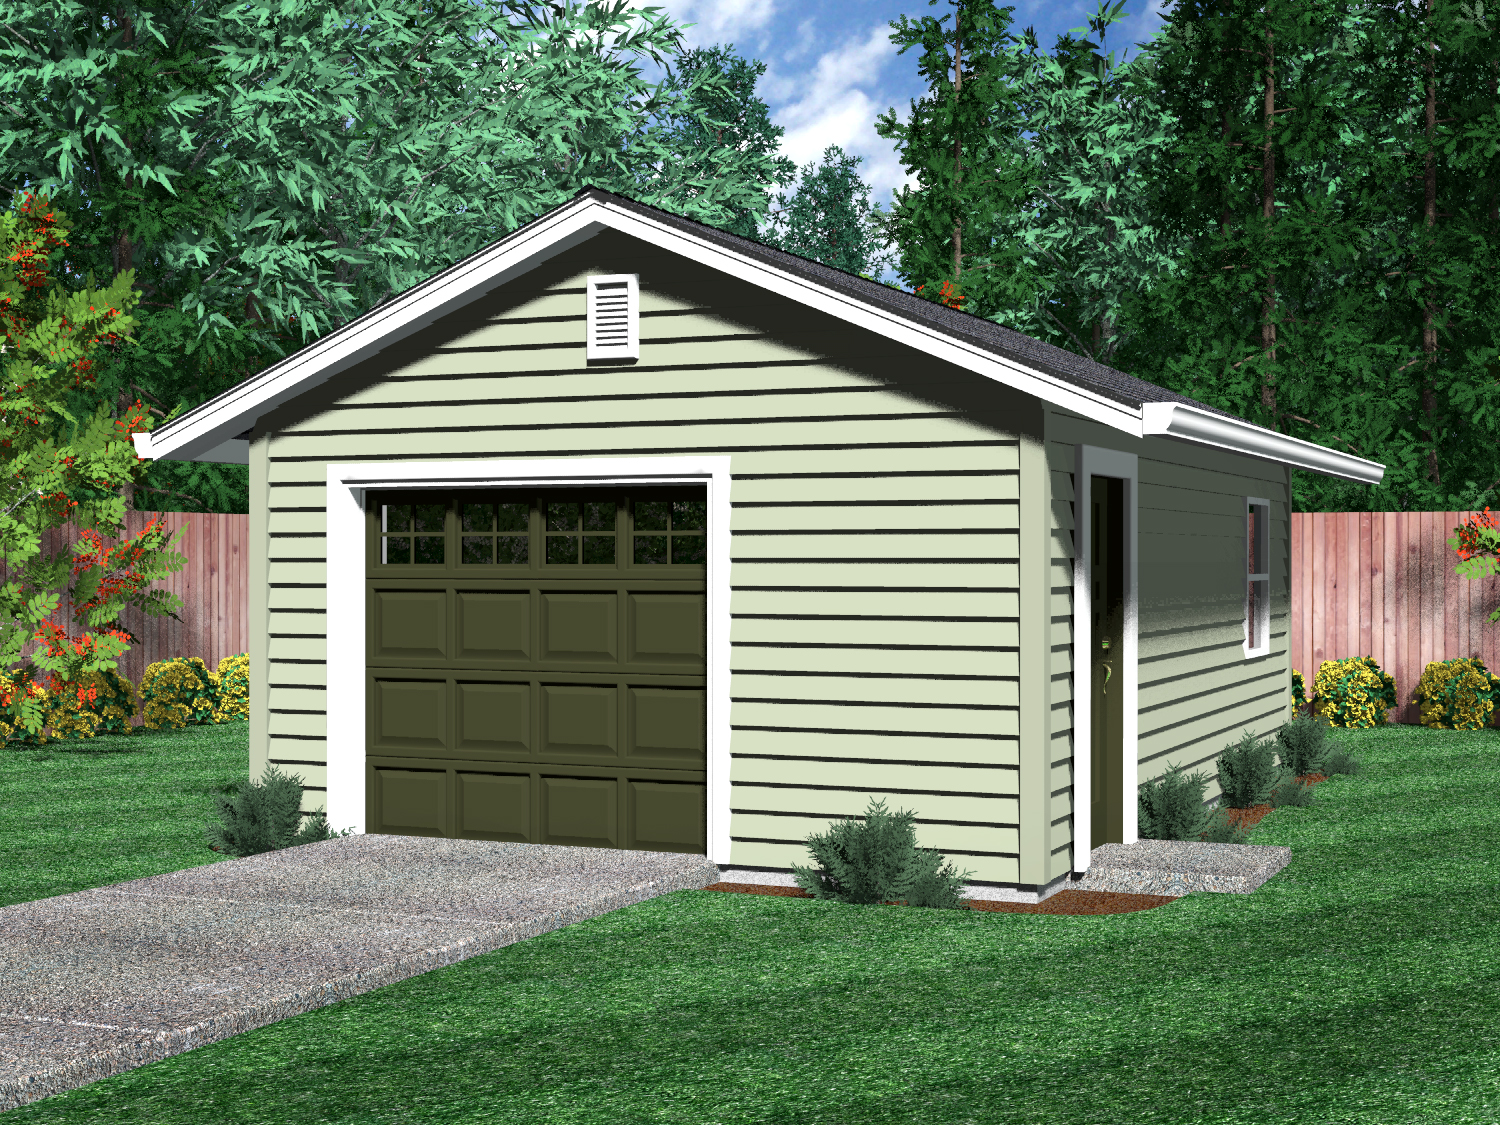 Exceptional Small House Plans With Detached Garage #1: 1_car_garage.jpg